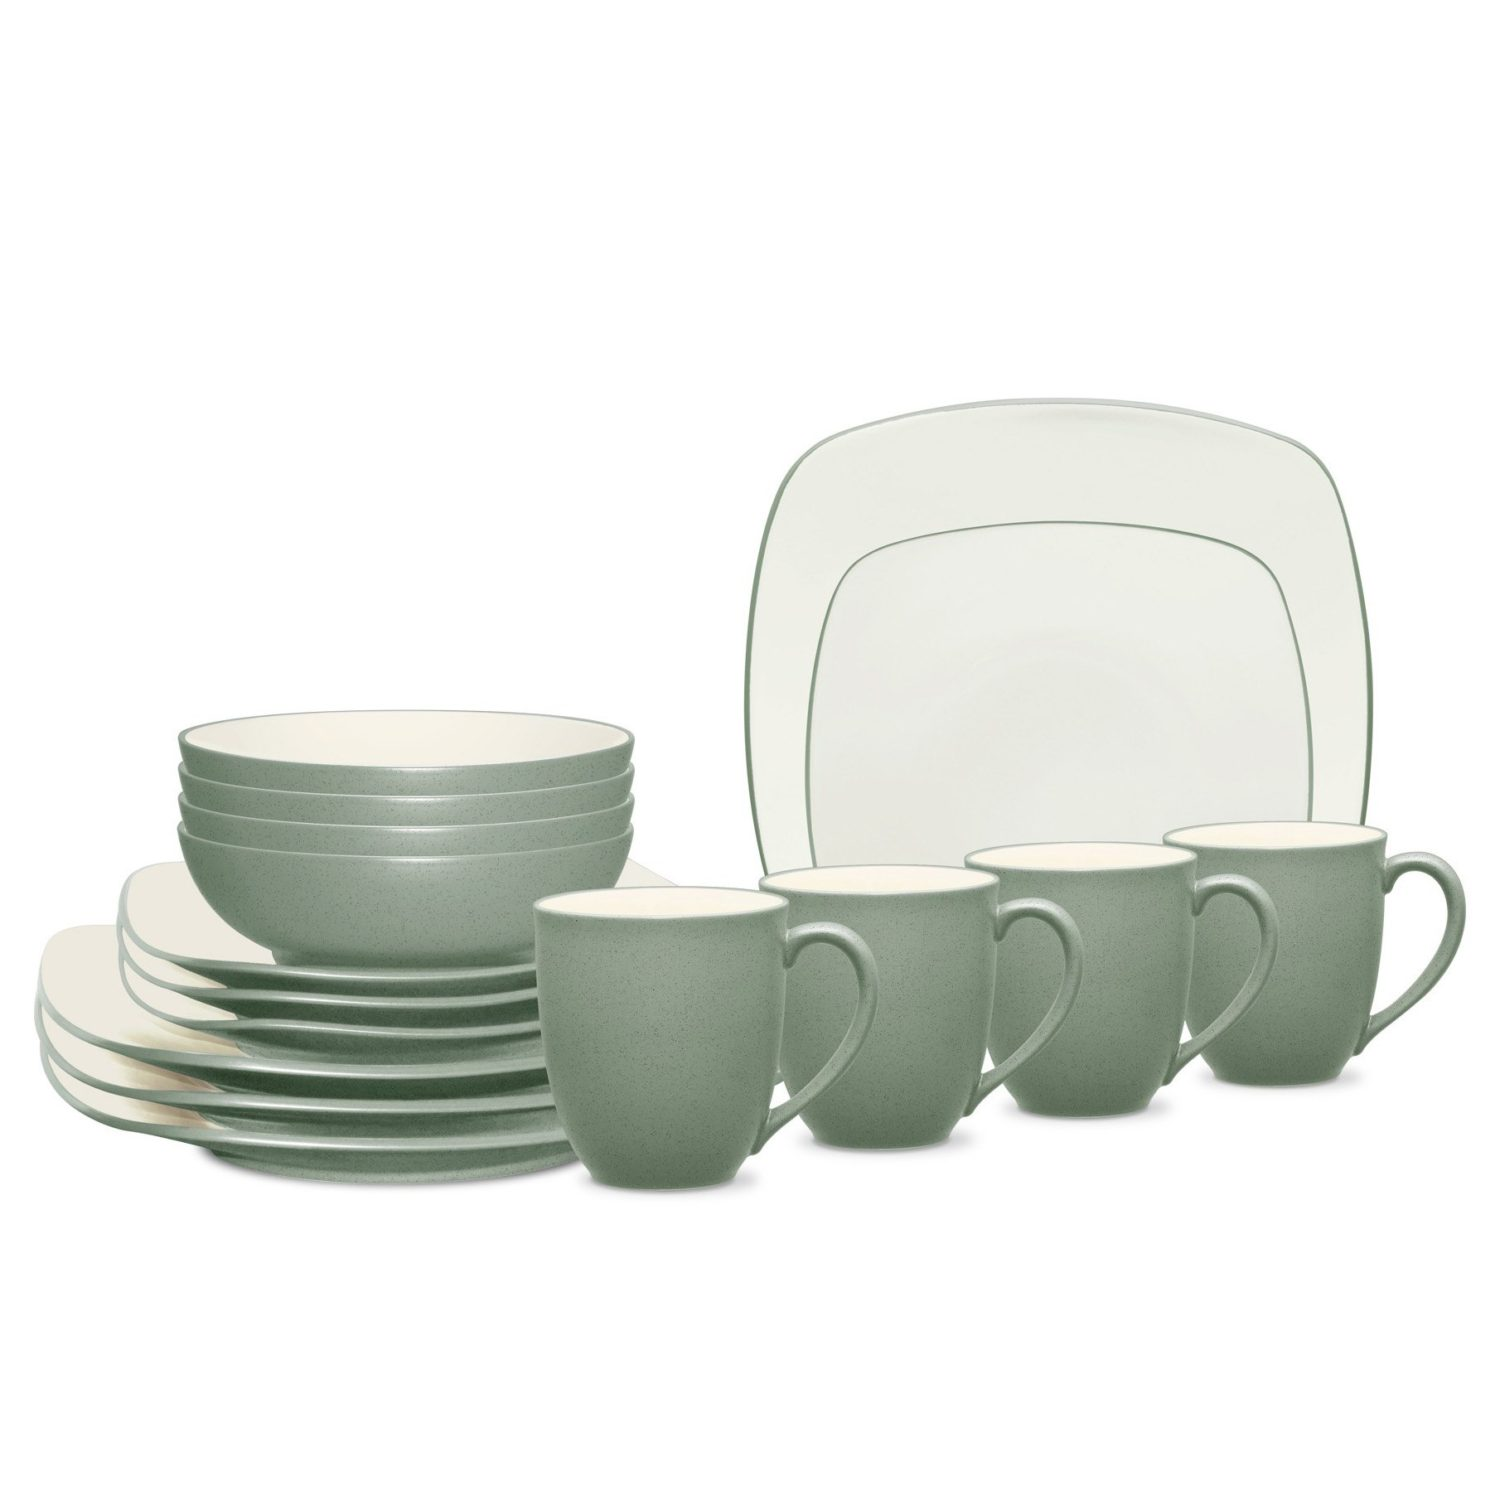 Noritake Colorwave Green Square 16-Piece Dinnerware Set